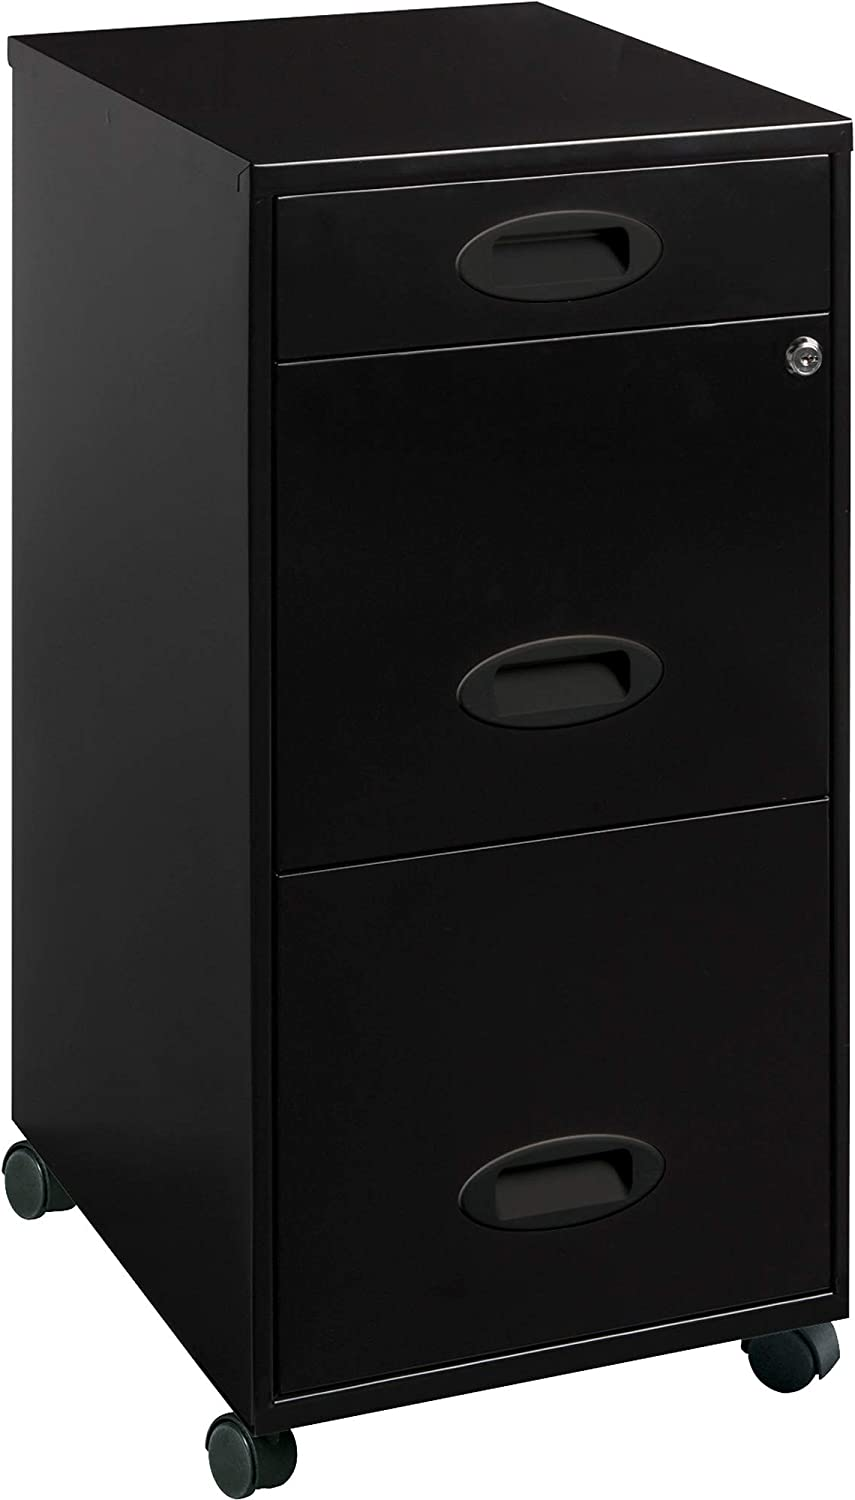 Lorell LLR17427 SOHO Mobile Cabinet, Black : Office Products